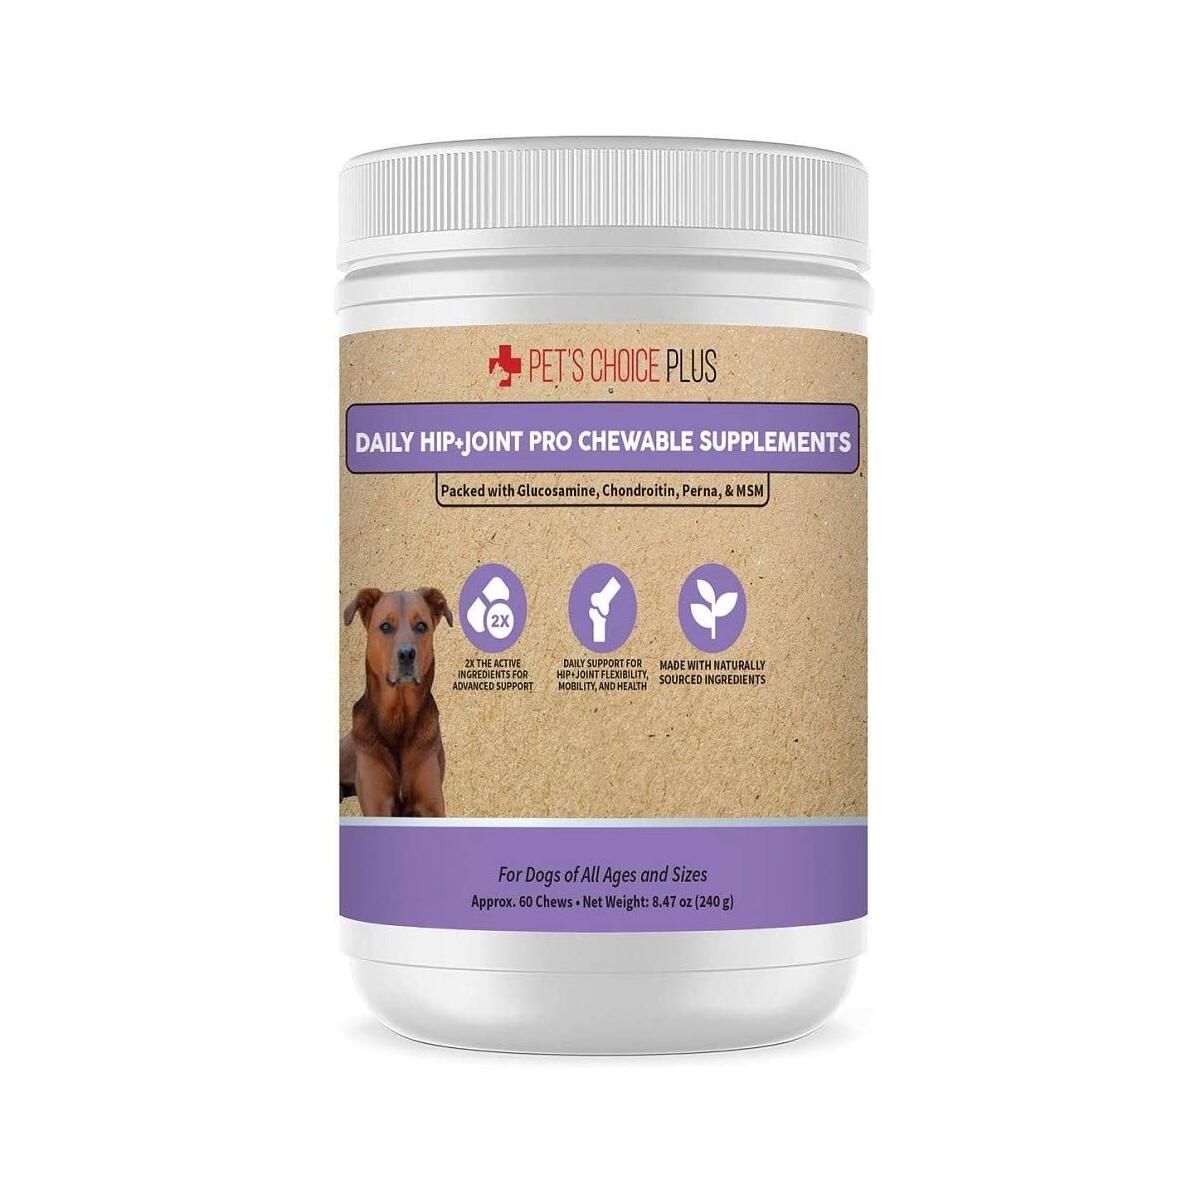 Daily Hip and Joint Pro Chewable Supplements